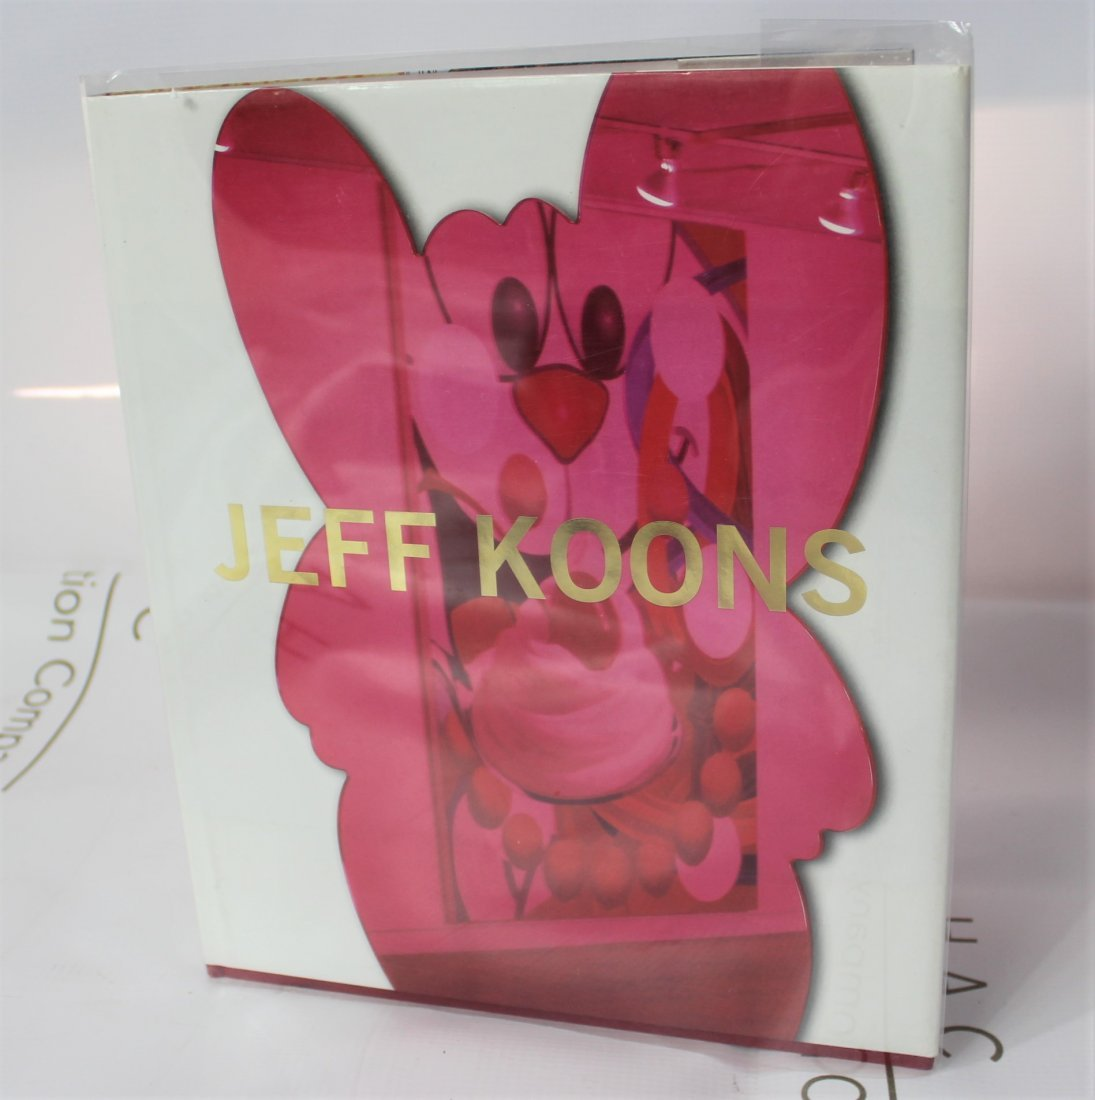 Book Signed by Jeff Koons - 3